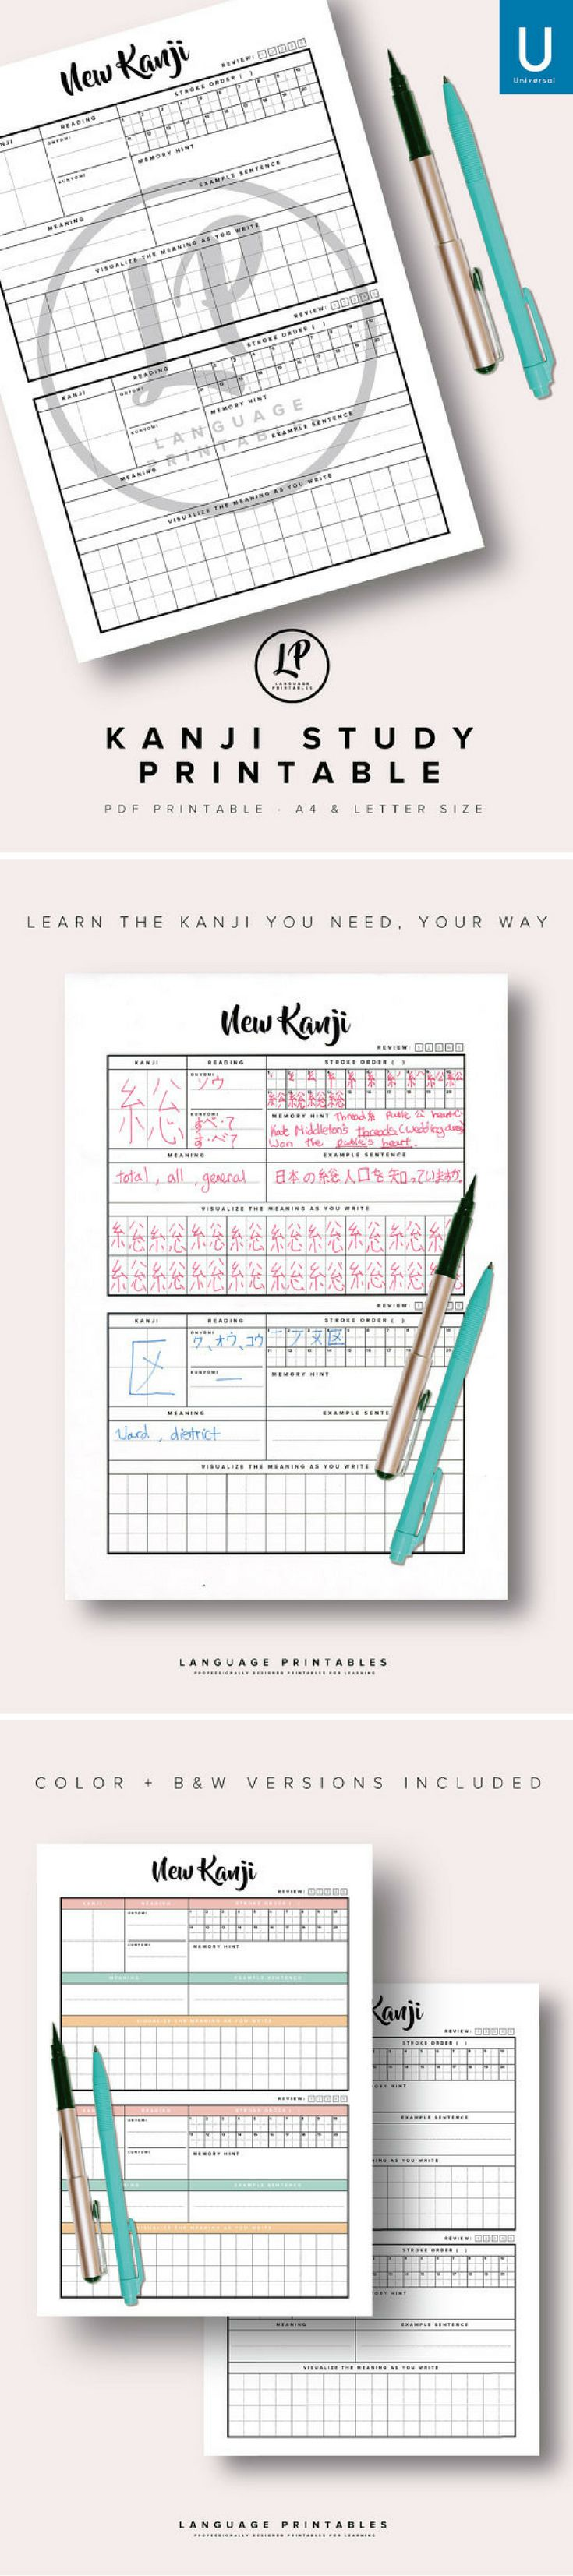 INSTANT DOWNLOAD! Kanji Study Printable. Learn kanji worksheets to help you practise and remember new kanji symbols. -in depth kanji memorization layout -special grid design to help characters with balanced strokes -kanji -onyomi and kunyomi -stroke order -memory hint for a mnemonic or similar -example sentence to practice use in context -writing practice space -handy review check Suitable for Japanese beginners! #japanese #kanji #ad #affiliate #etsy #worksheets #printable